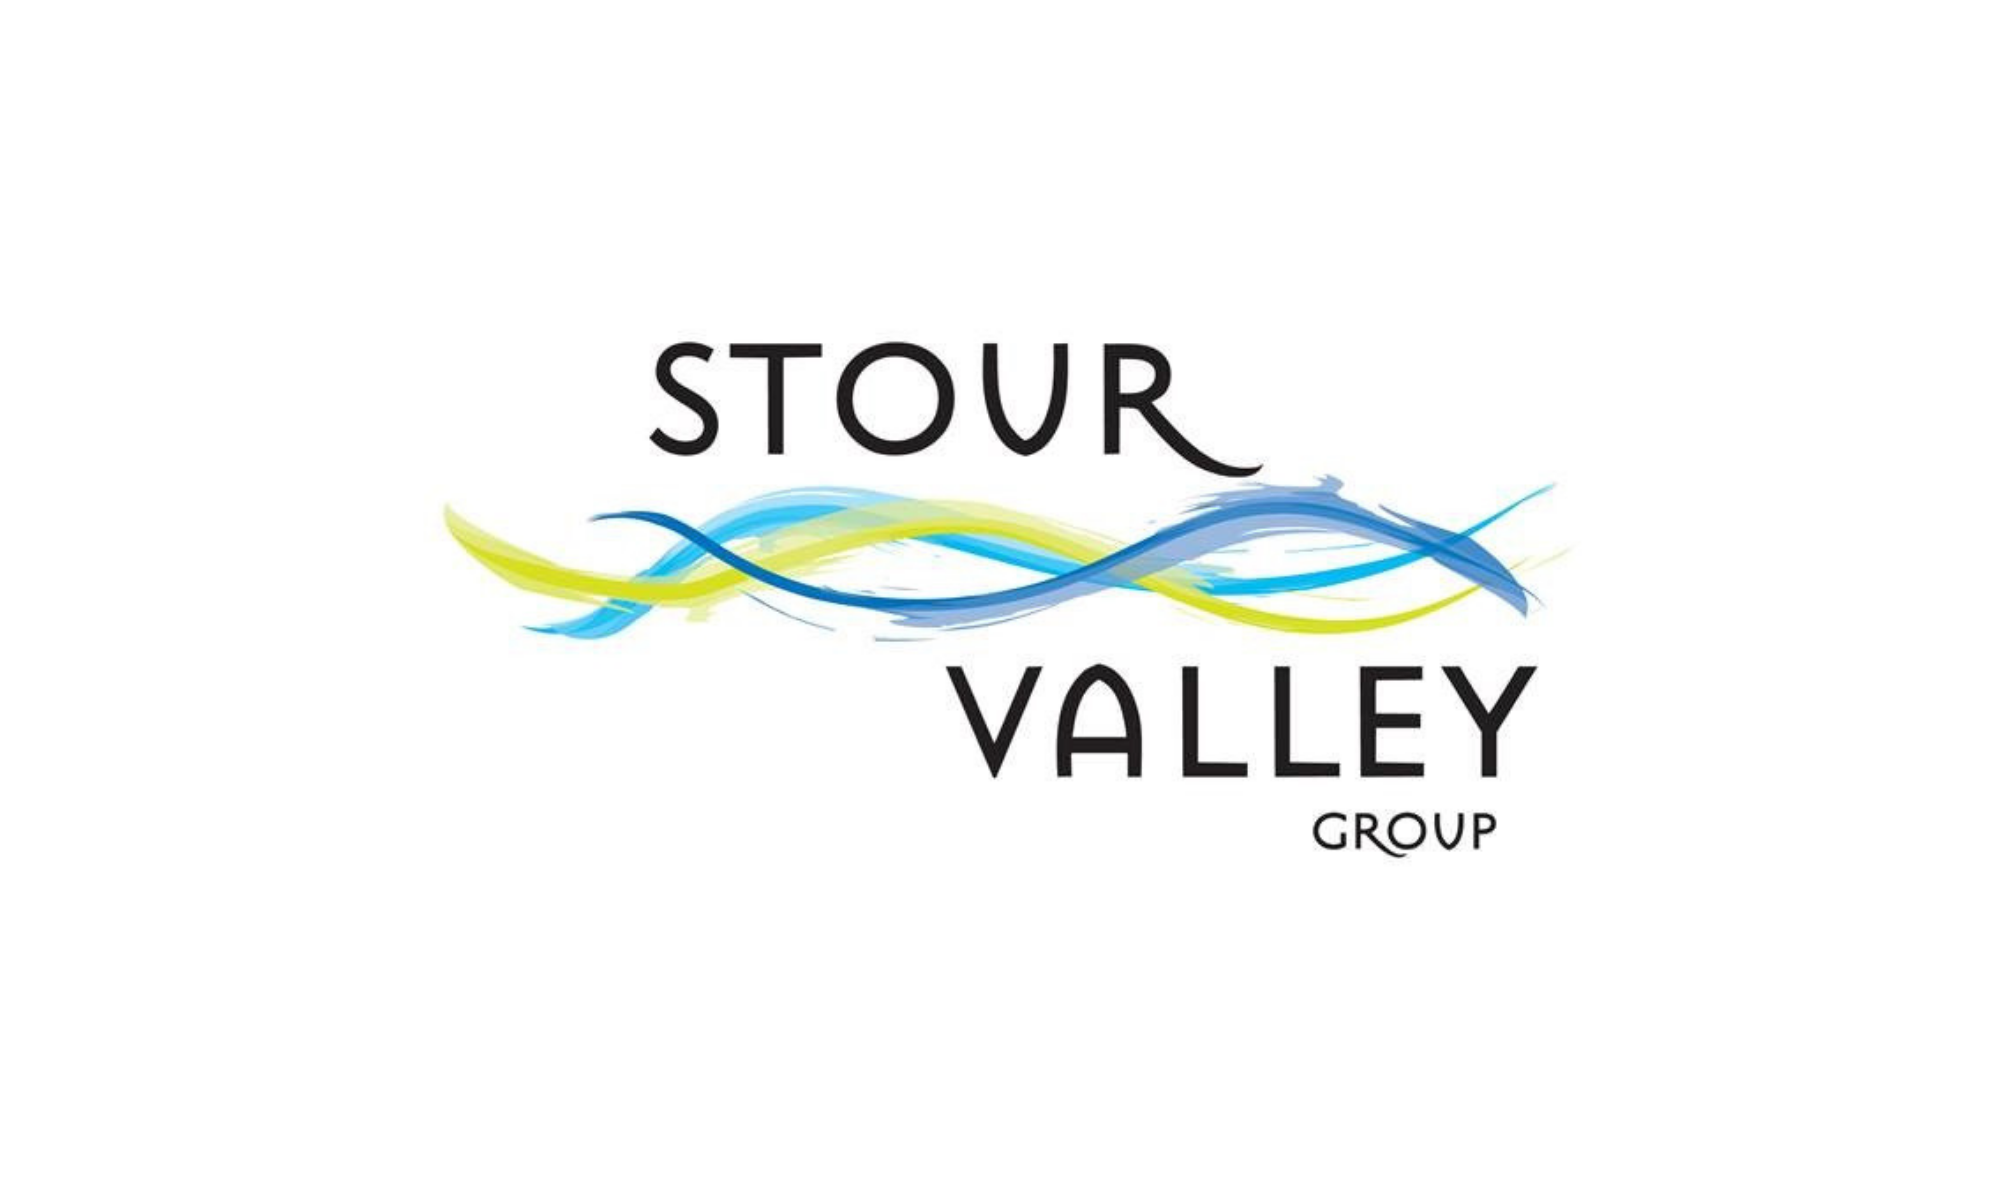 Stour Valley Group